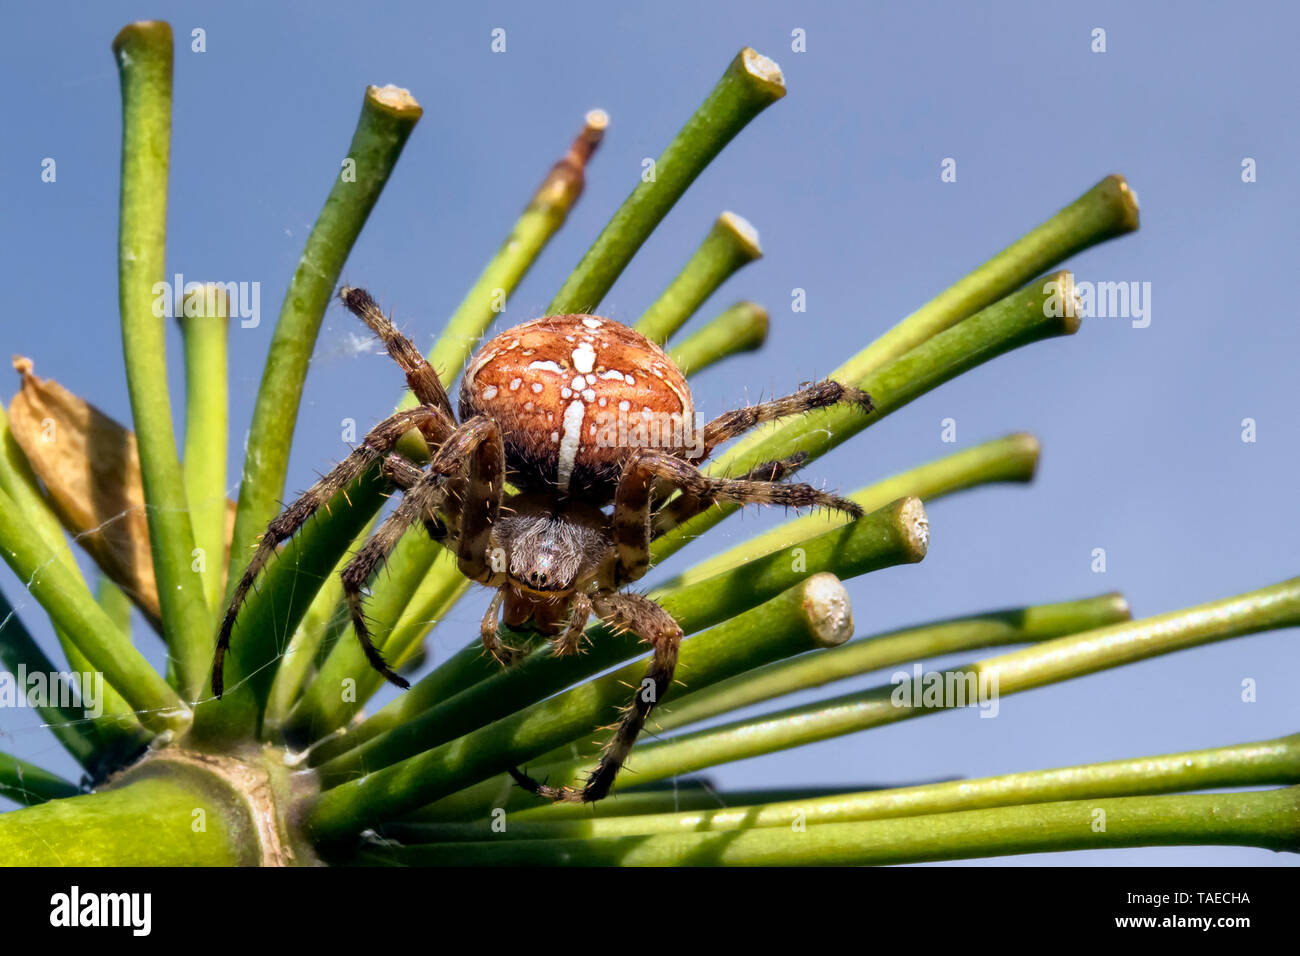 Cross orbweaver (Araneus diadematus) moving on an agapanthus stem to weave its web in the fall, Country Garden, Lorraine, France - Stock Image